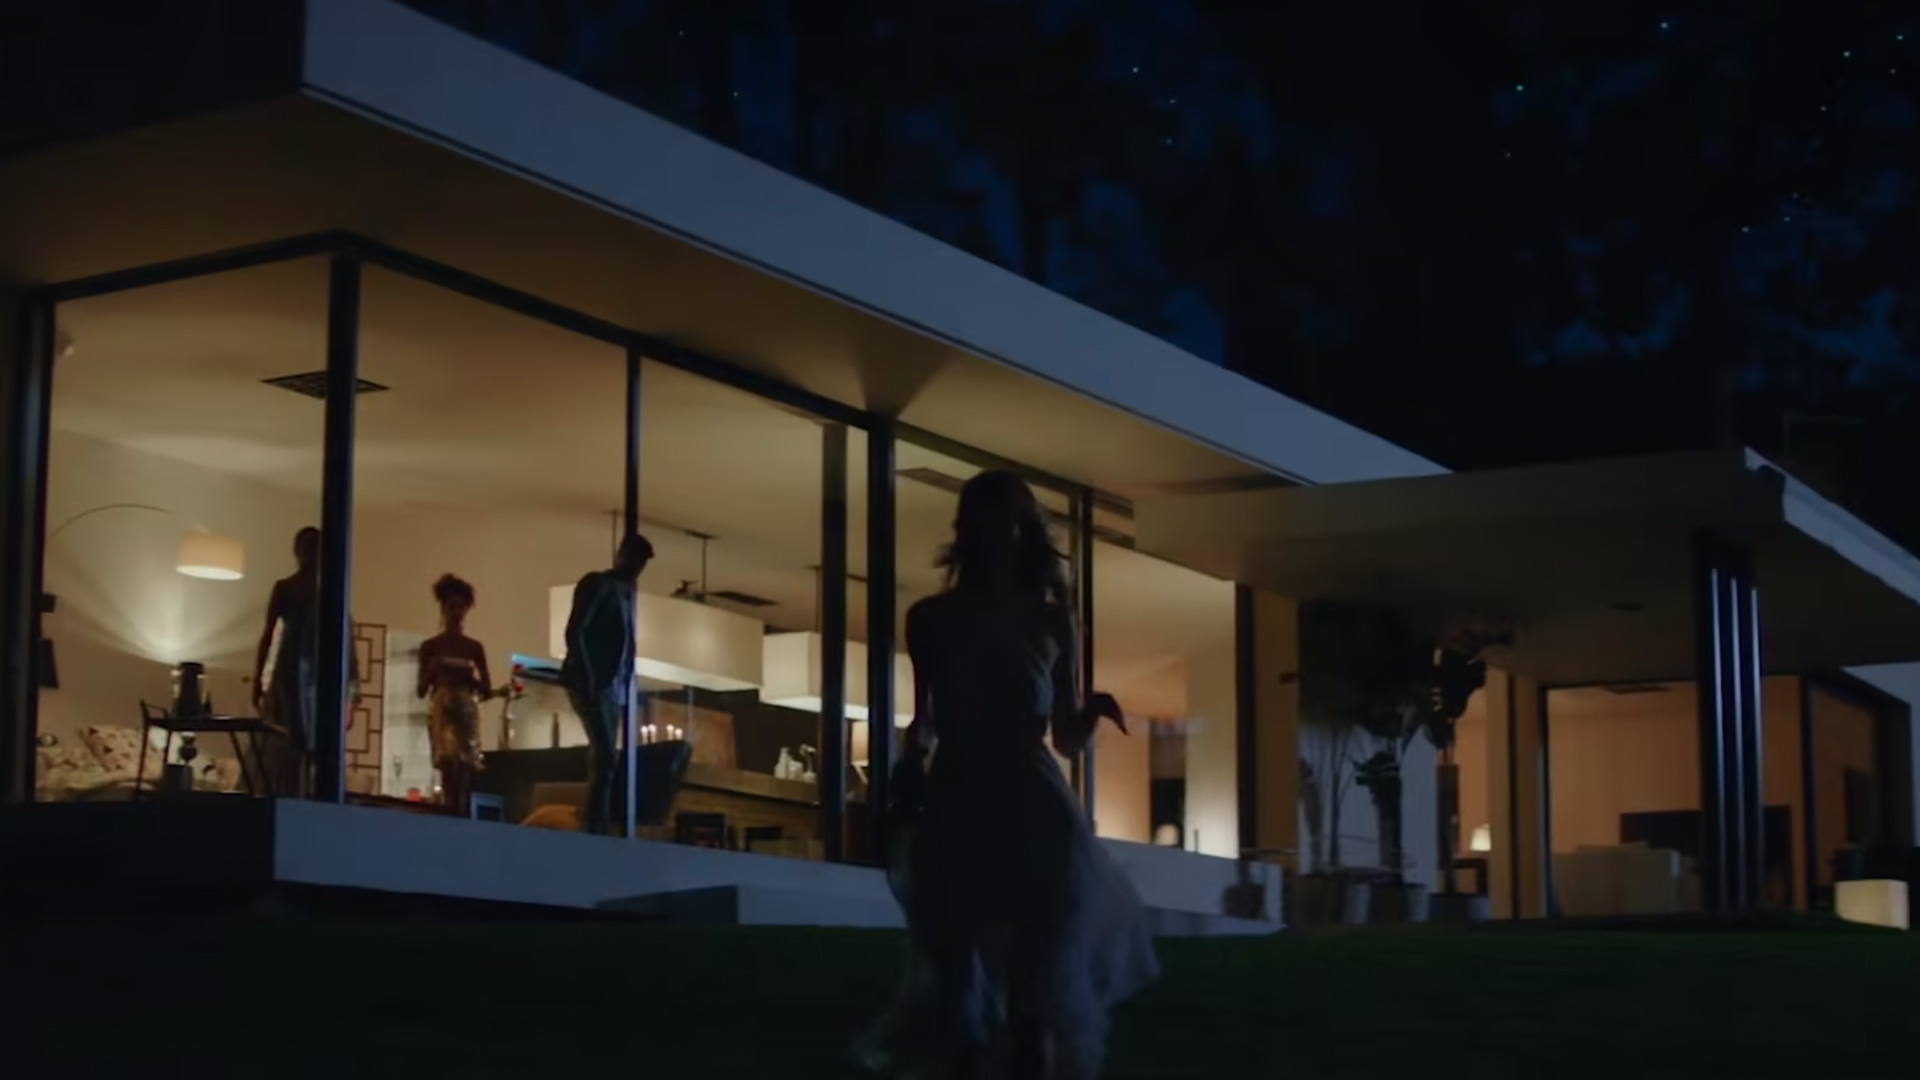 People in a house at night